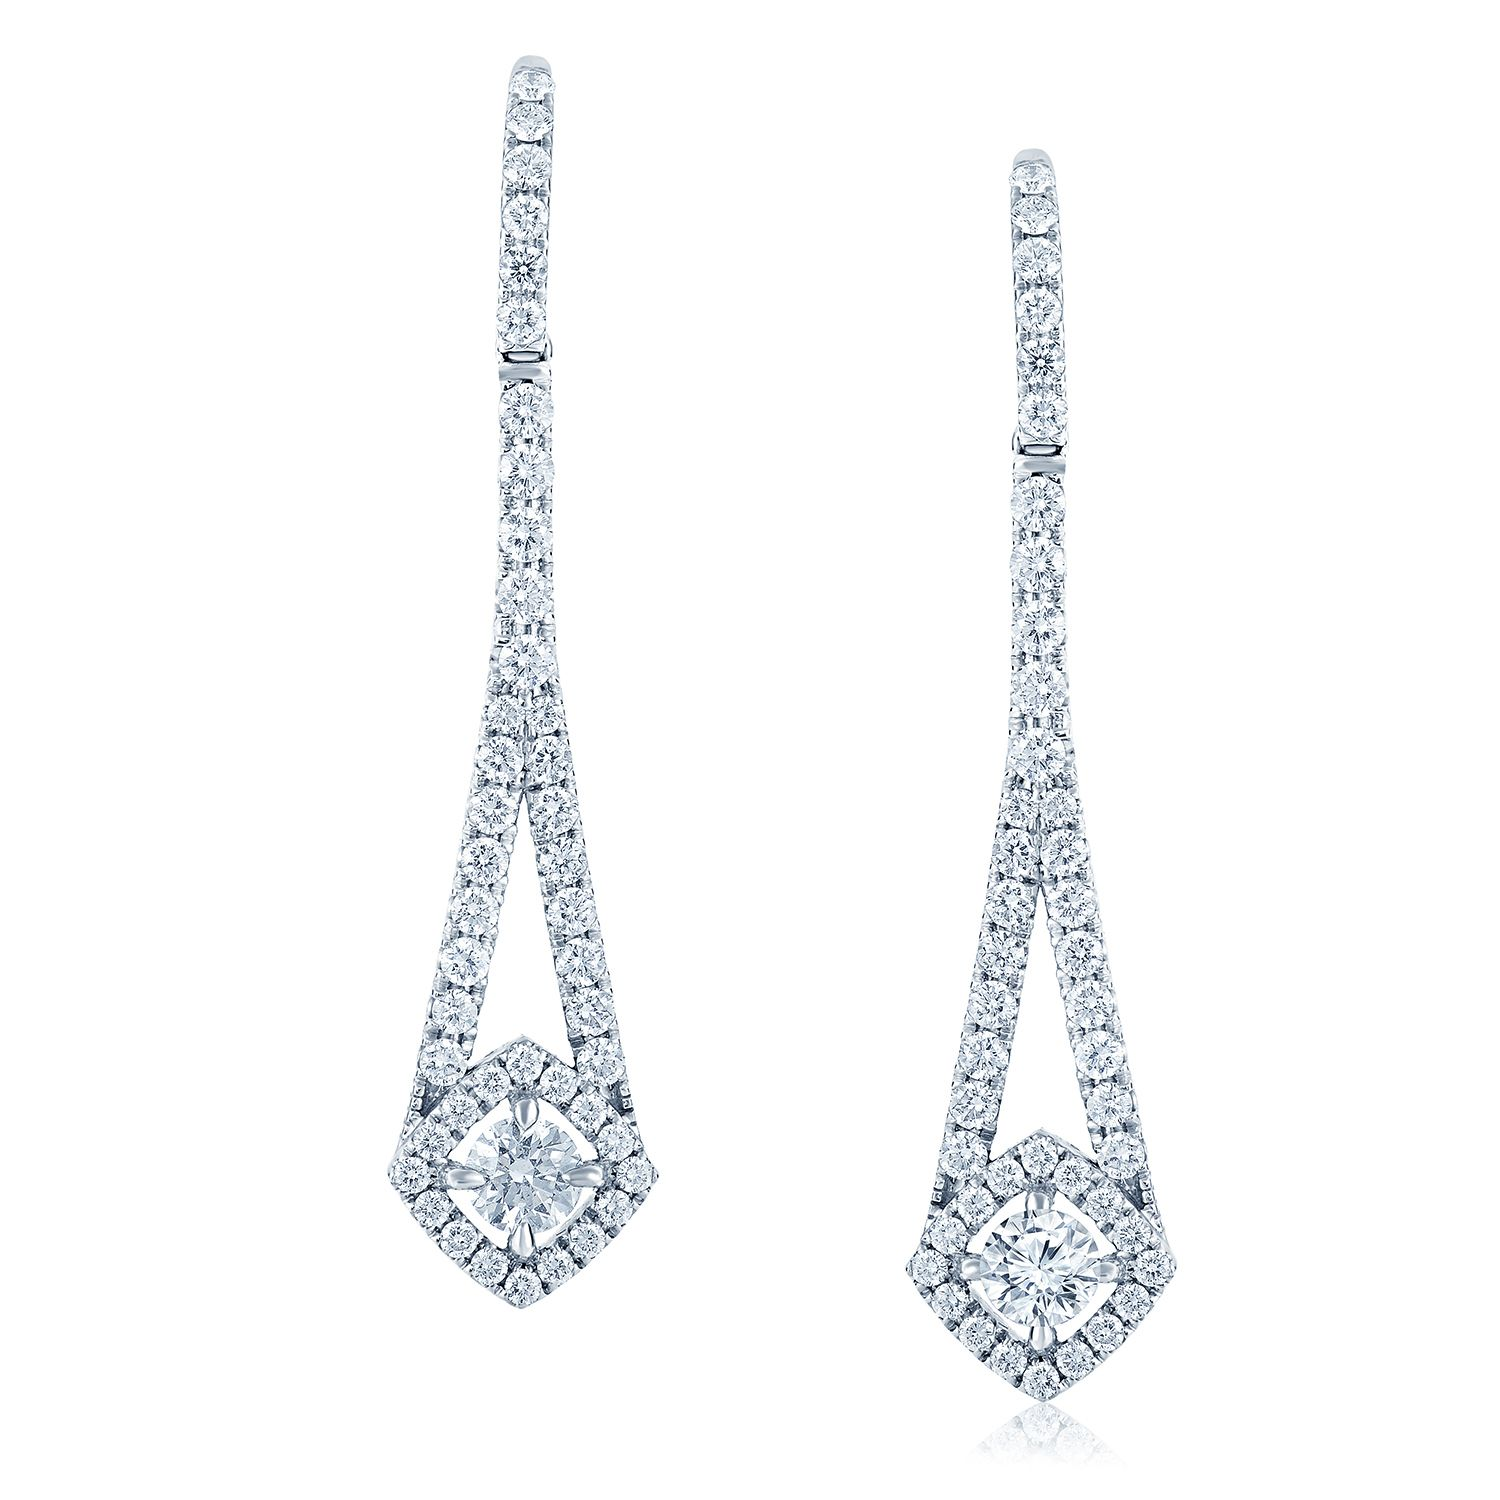 Verstolo Penelope These Hanging Diamond Earrings Feature Round Brilliant Center Stoneicro Pave Detailing That Are Set In 18k White Gold